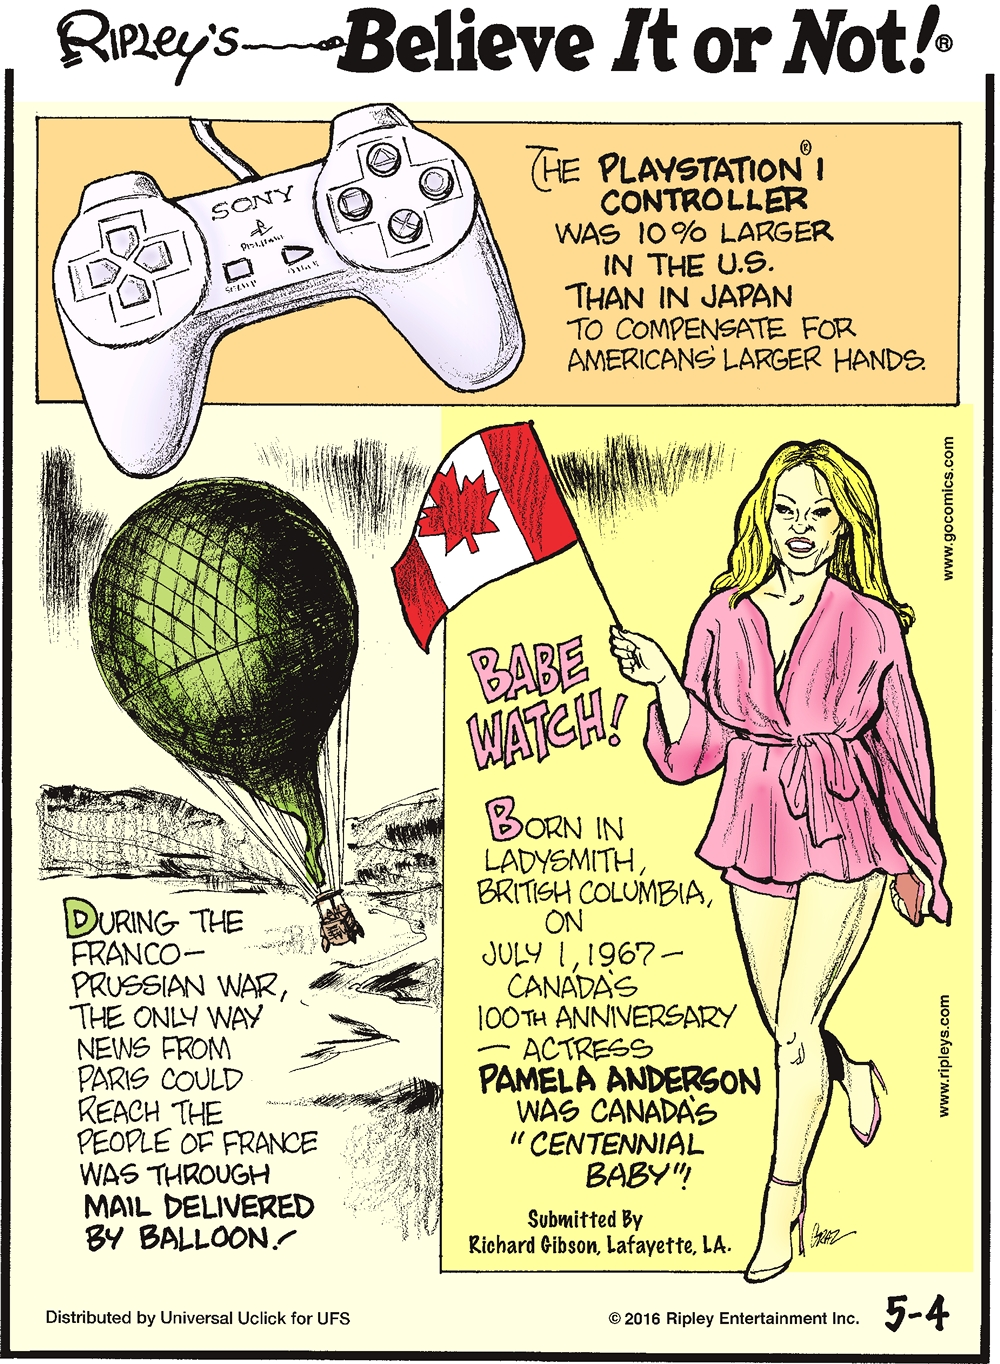 "The Playstation I controller was 10% larger in the US than in Japan to compensate for Americans larger hands. -------------------- During the Franco-Prussian War, the only way news from Paris could reach the people of France was through mail delivered by balloon! -------------------- Babe Watch! Born in Ladysmith, British Columbia, on July 1, 1967—Canada's 100th anniversary—actress Pamela Anderson was Canada's ""Centennial Baby""! Submitted by Richard Gibson, Lafayette, LA."